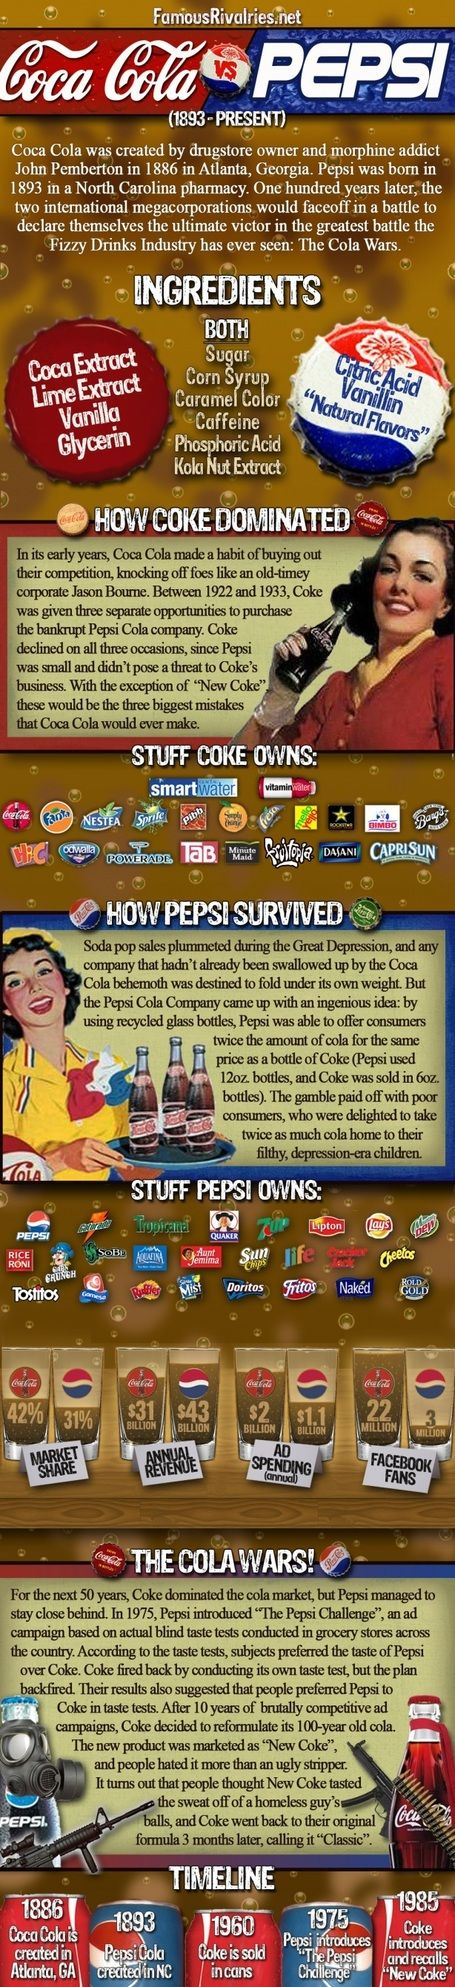 Famous Rivalries: Coke vs. Pepsi